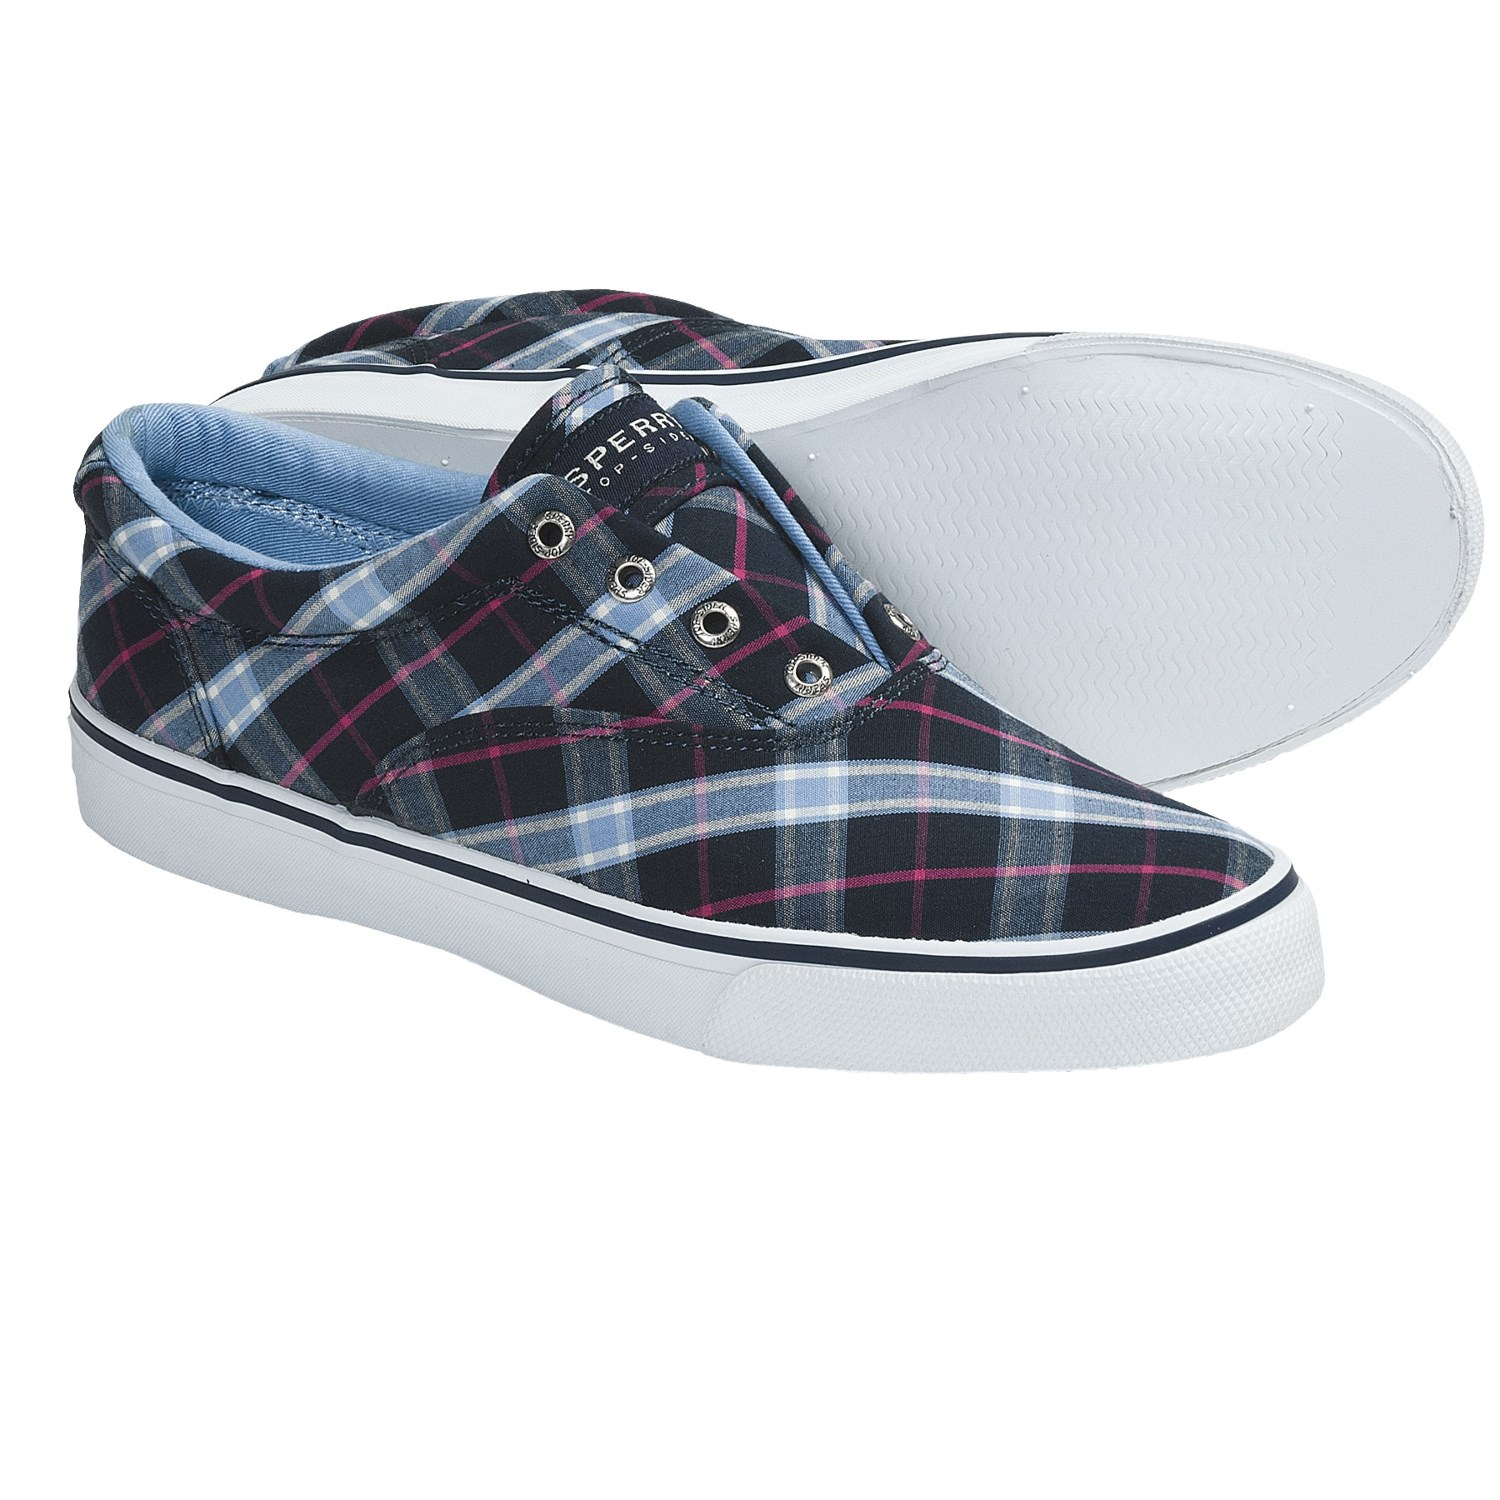 Blue Sperry Slip-On Shoes for Woman